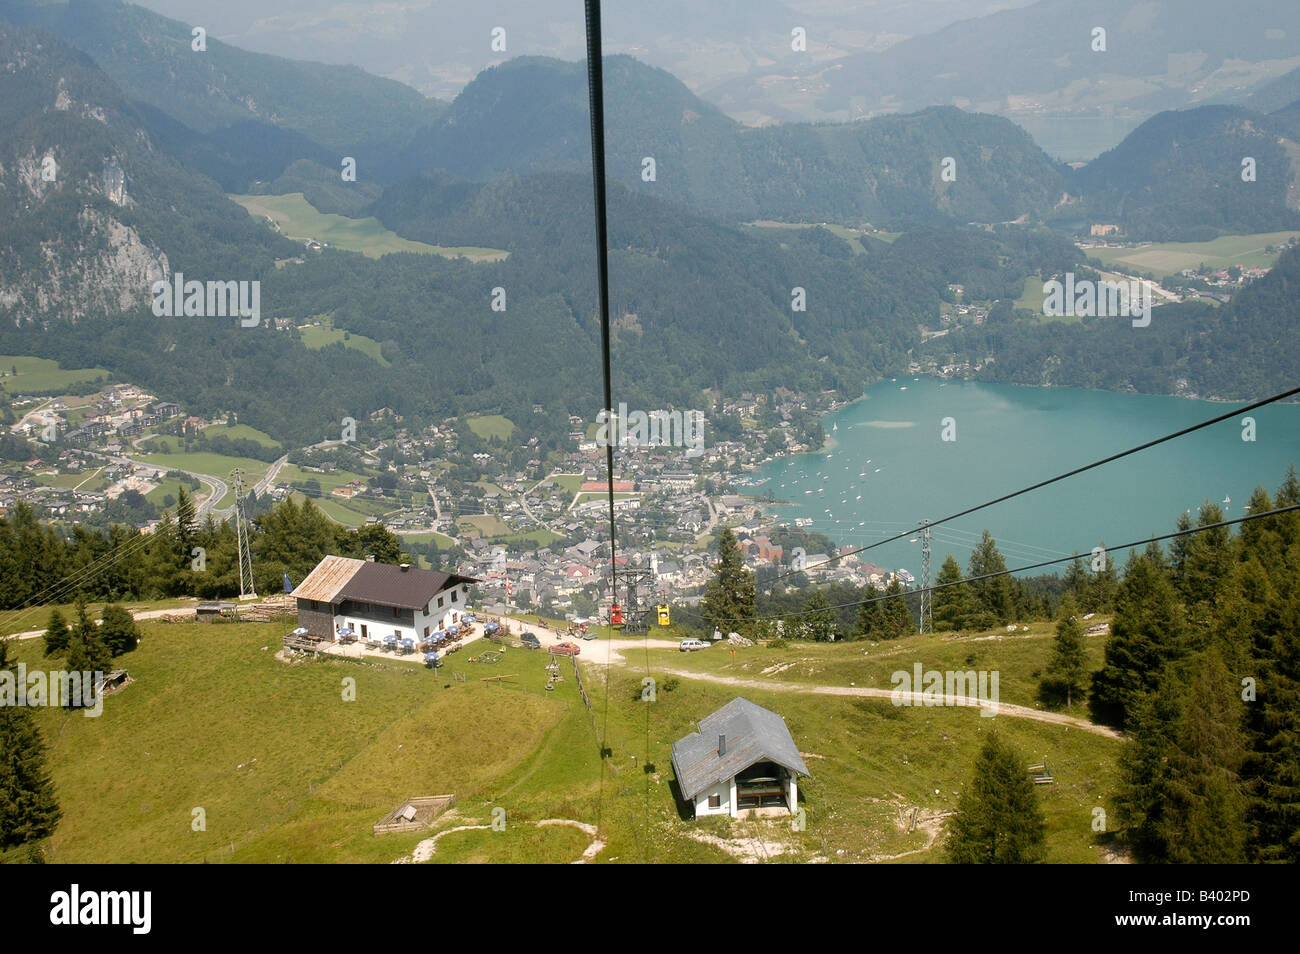 Austria Upper Austria Salzburg St Gilgen and Lake Wolfgang in the Dachstein Mountains A scenic view from the mountain - Stock Image